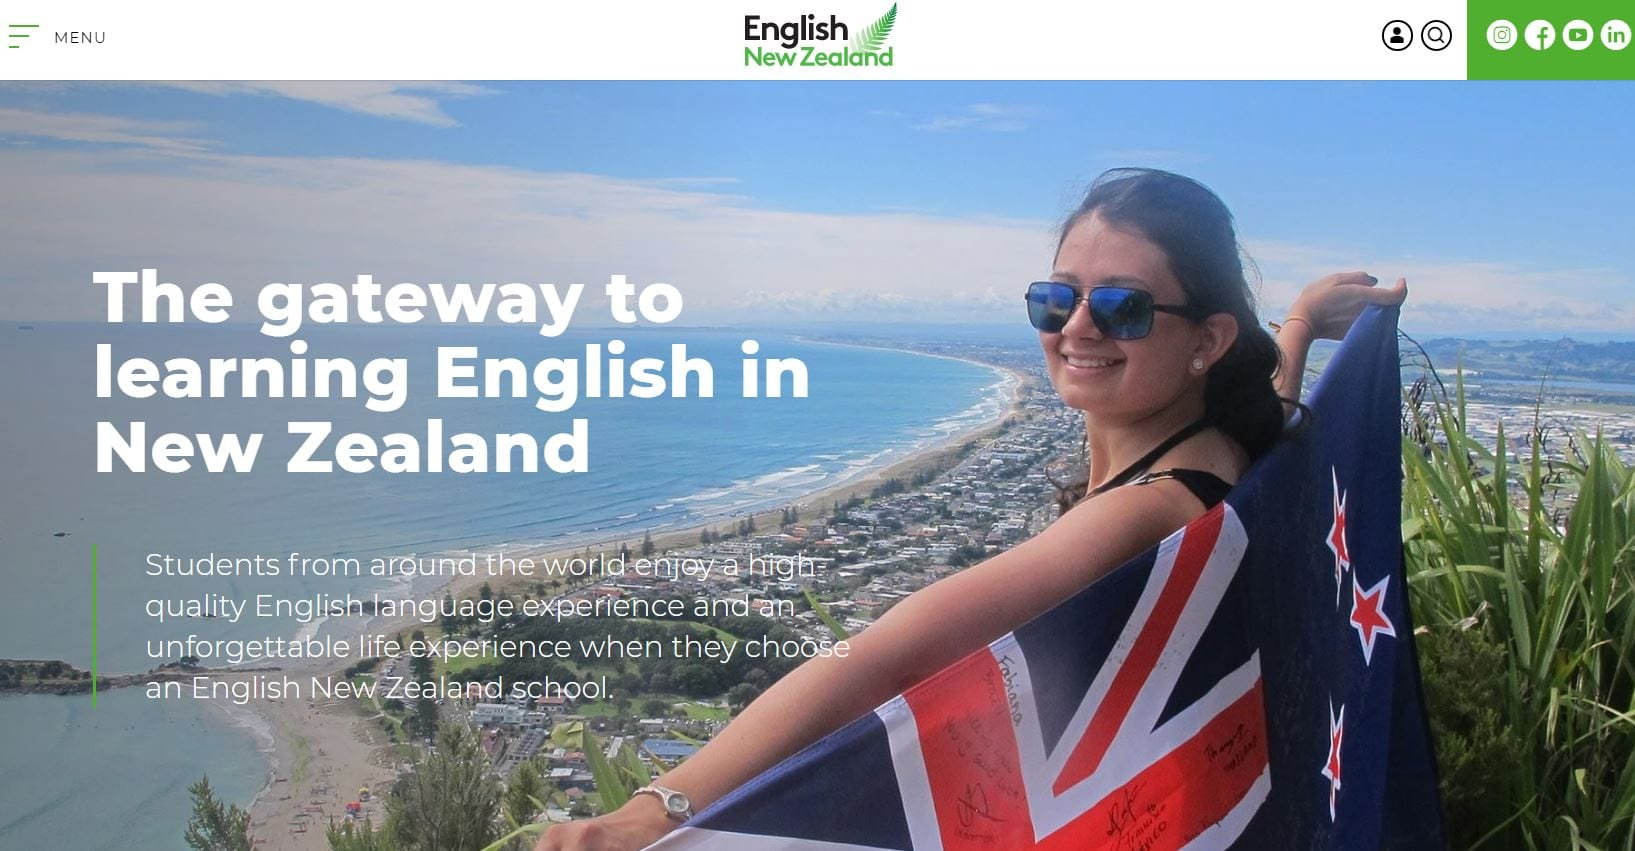 English New Zealand Website Gets Reboot in 2021